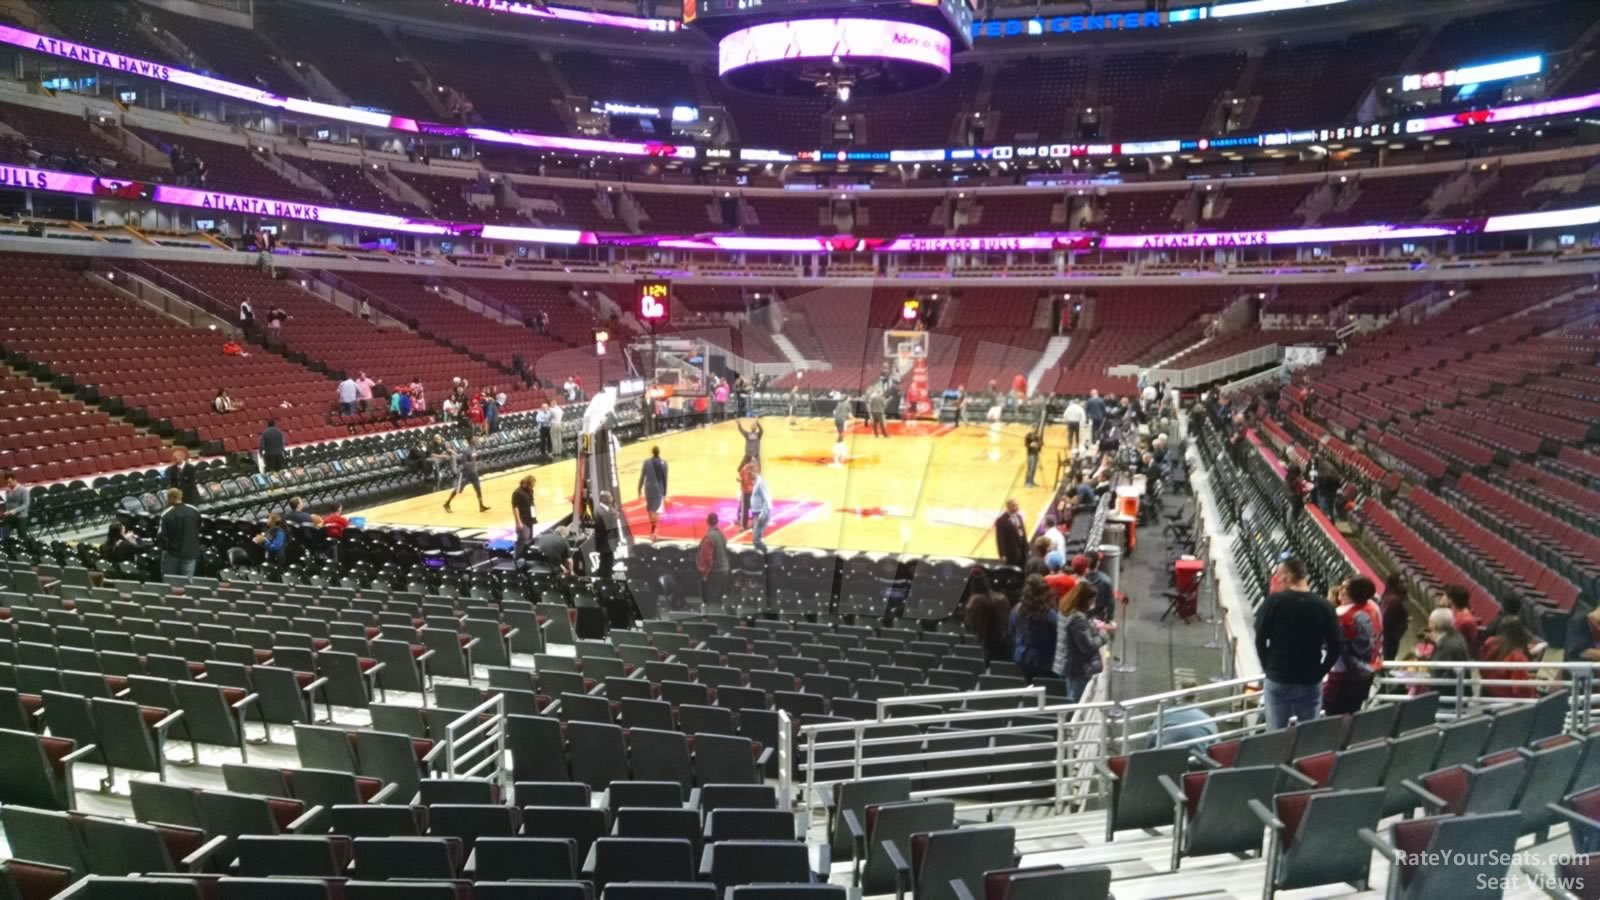 United Center Section 105 - Chicago Bulls - RateYourSeats.com